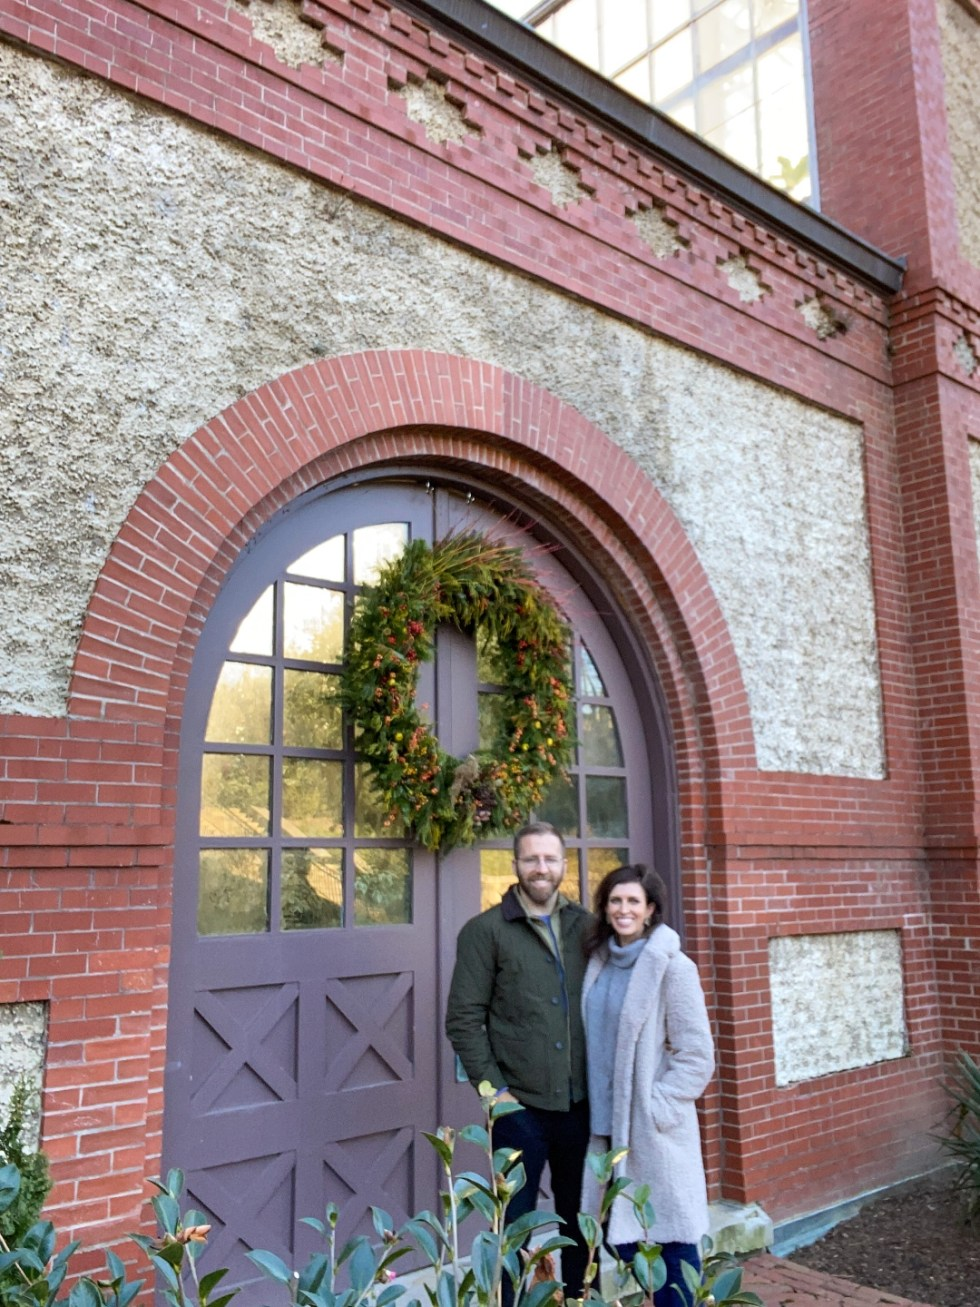 Moments to be Grateful for by popular NC lifestyle blog, I'm Fixin' To: image of a man and woman standing together in front of purple door with a large wreath hanging on it.